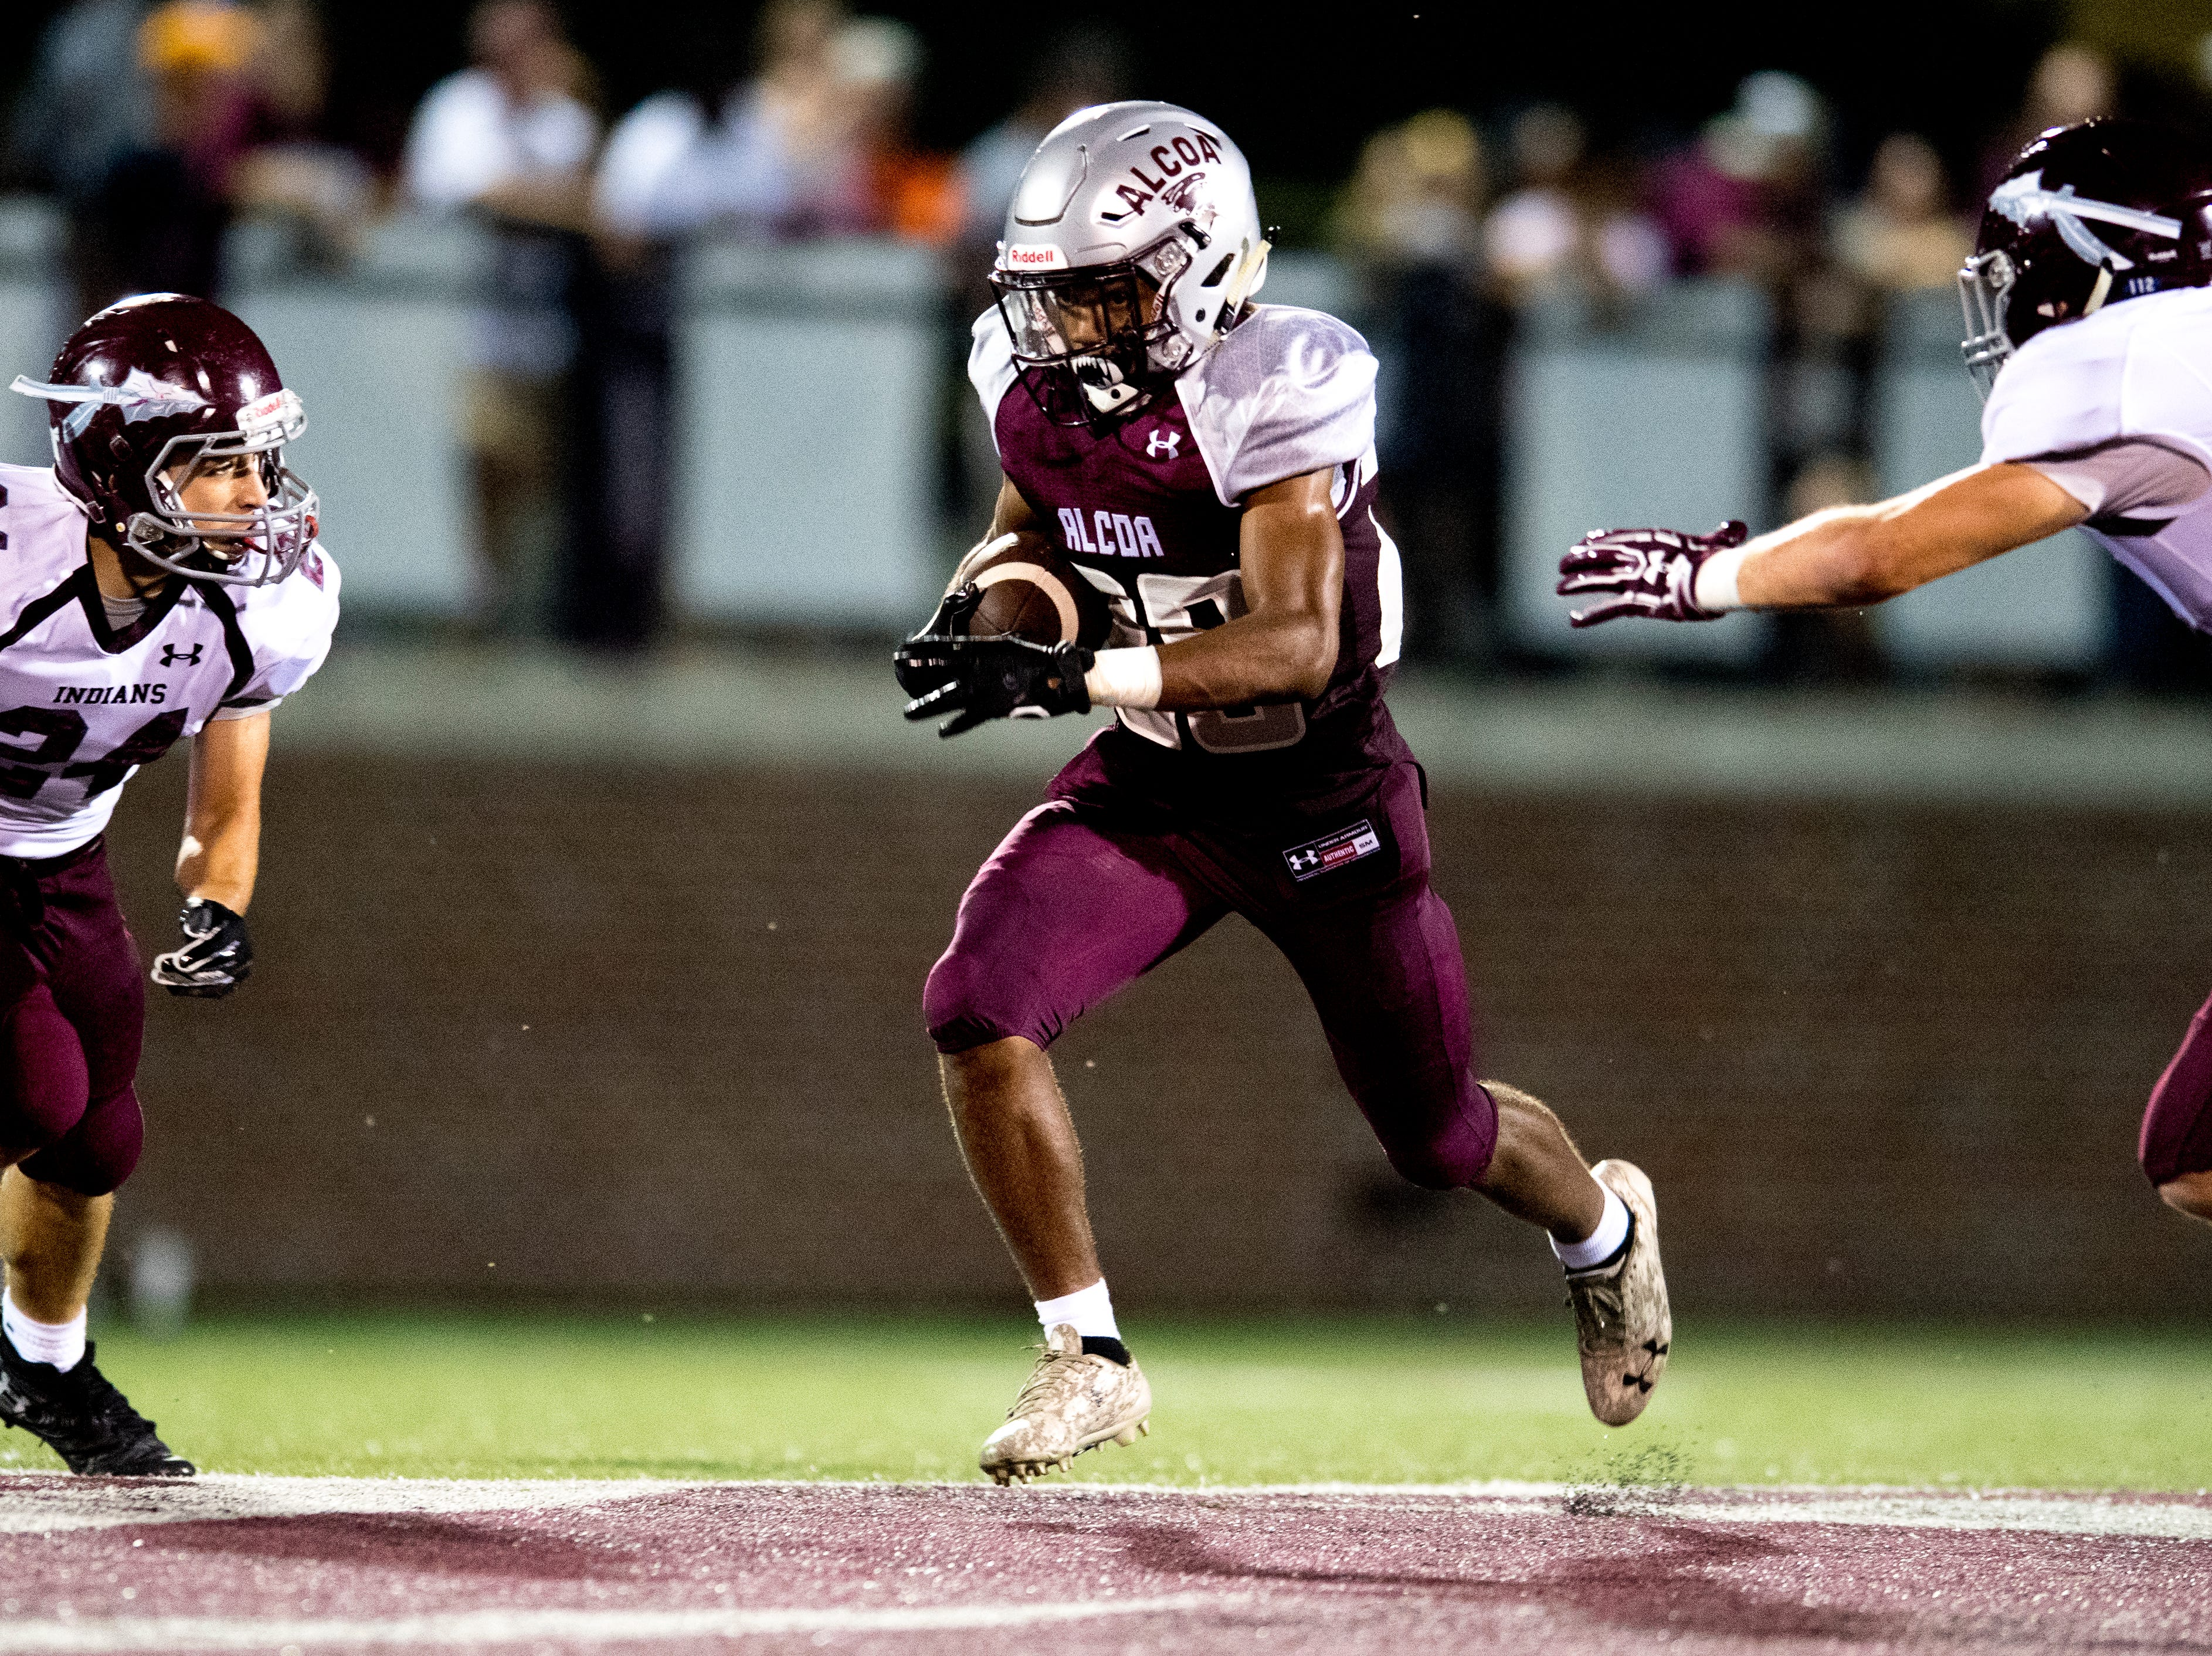 Alcoa's J.R. Jones (28) runs with the ball during a game between Alcoa and Dobyns-Bennett at Alcoa High School in Alcoa, Tennessee on Friday, September 21, 2018.